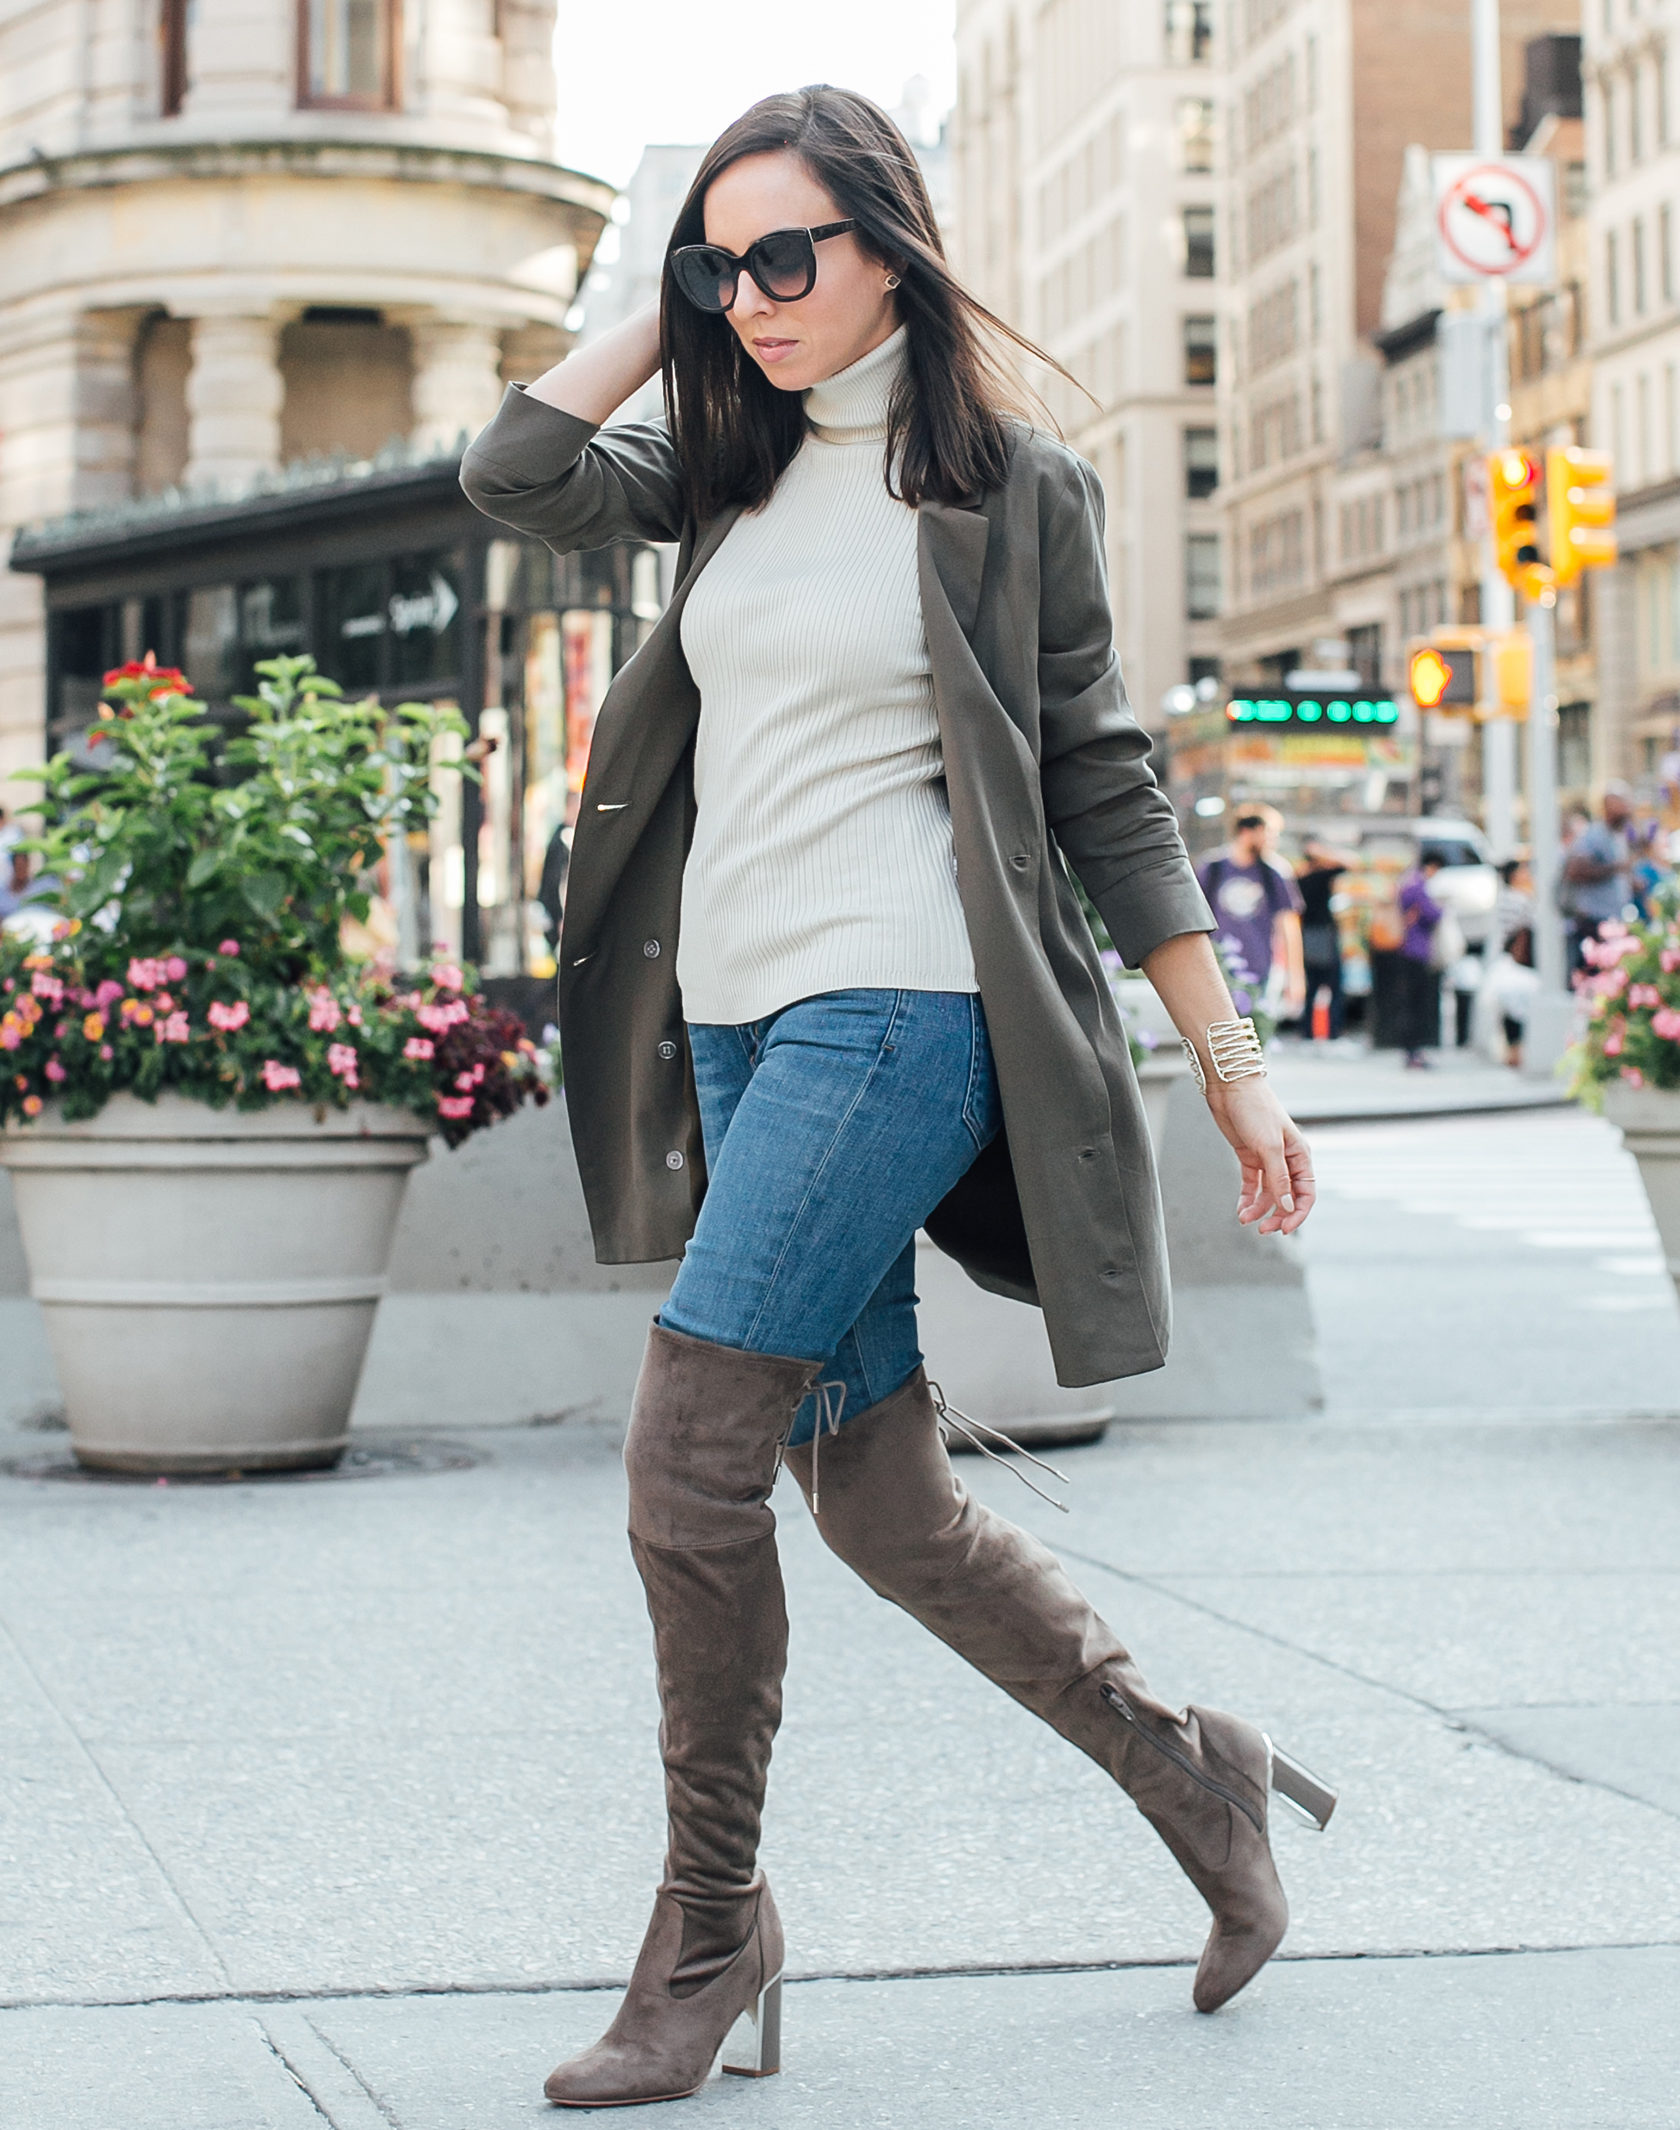 Sydne Style shows how to wear thigh high boots for fall